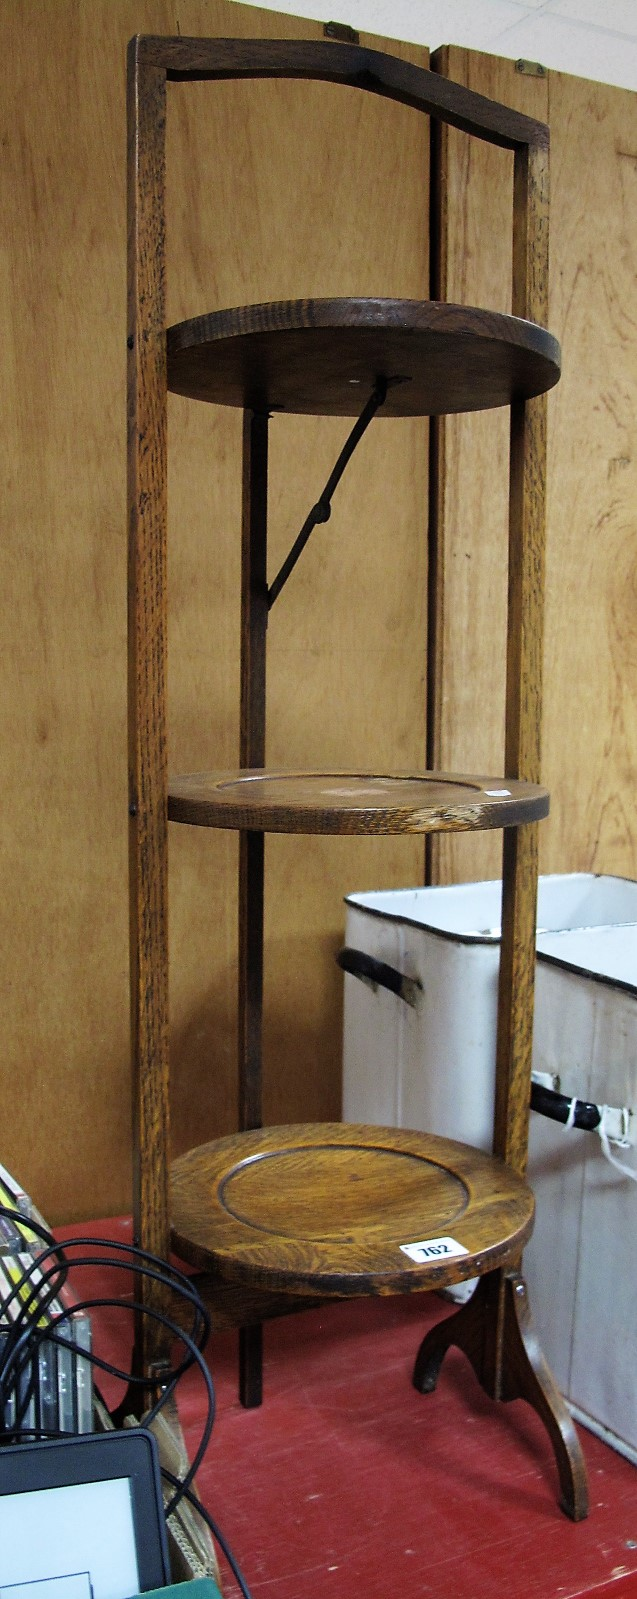 Lot 762 - A 1920's Three Tier Folding Cakestand